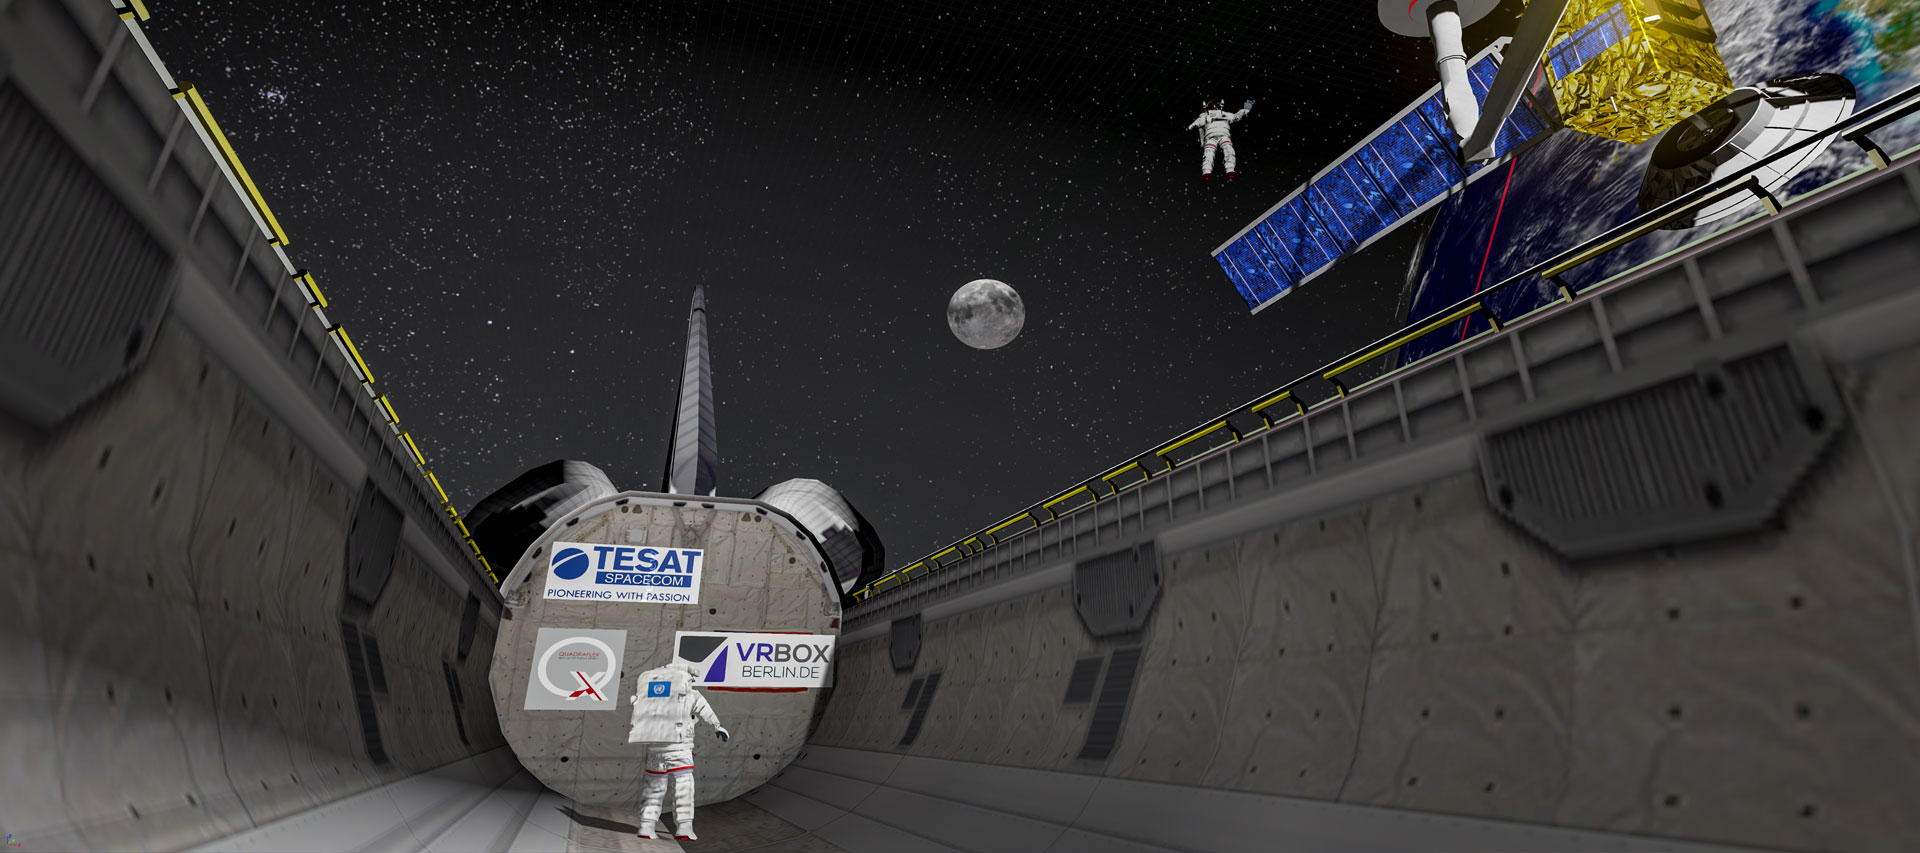 Individuelles Virtual Reality Game. User schwerelos im All zur Satelliten Reparatur